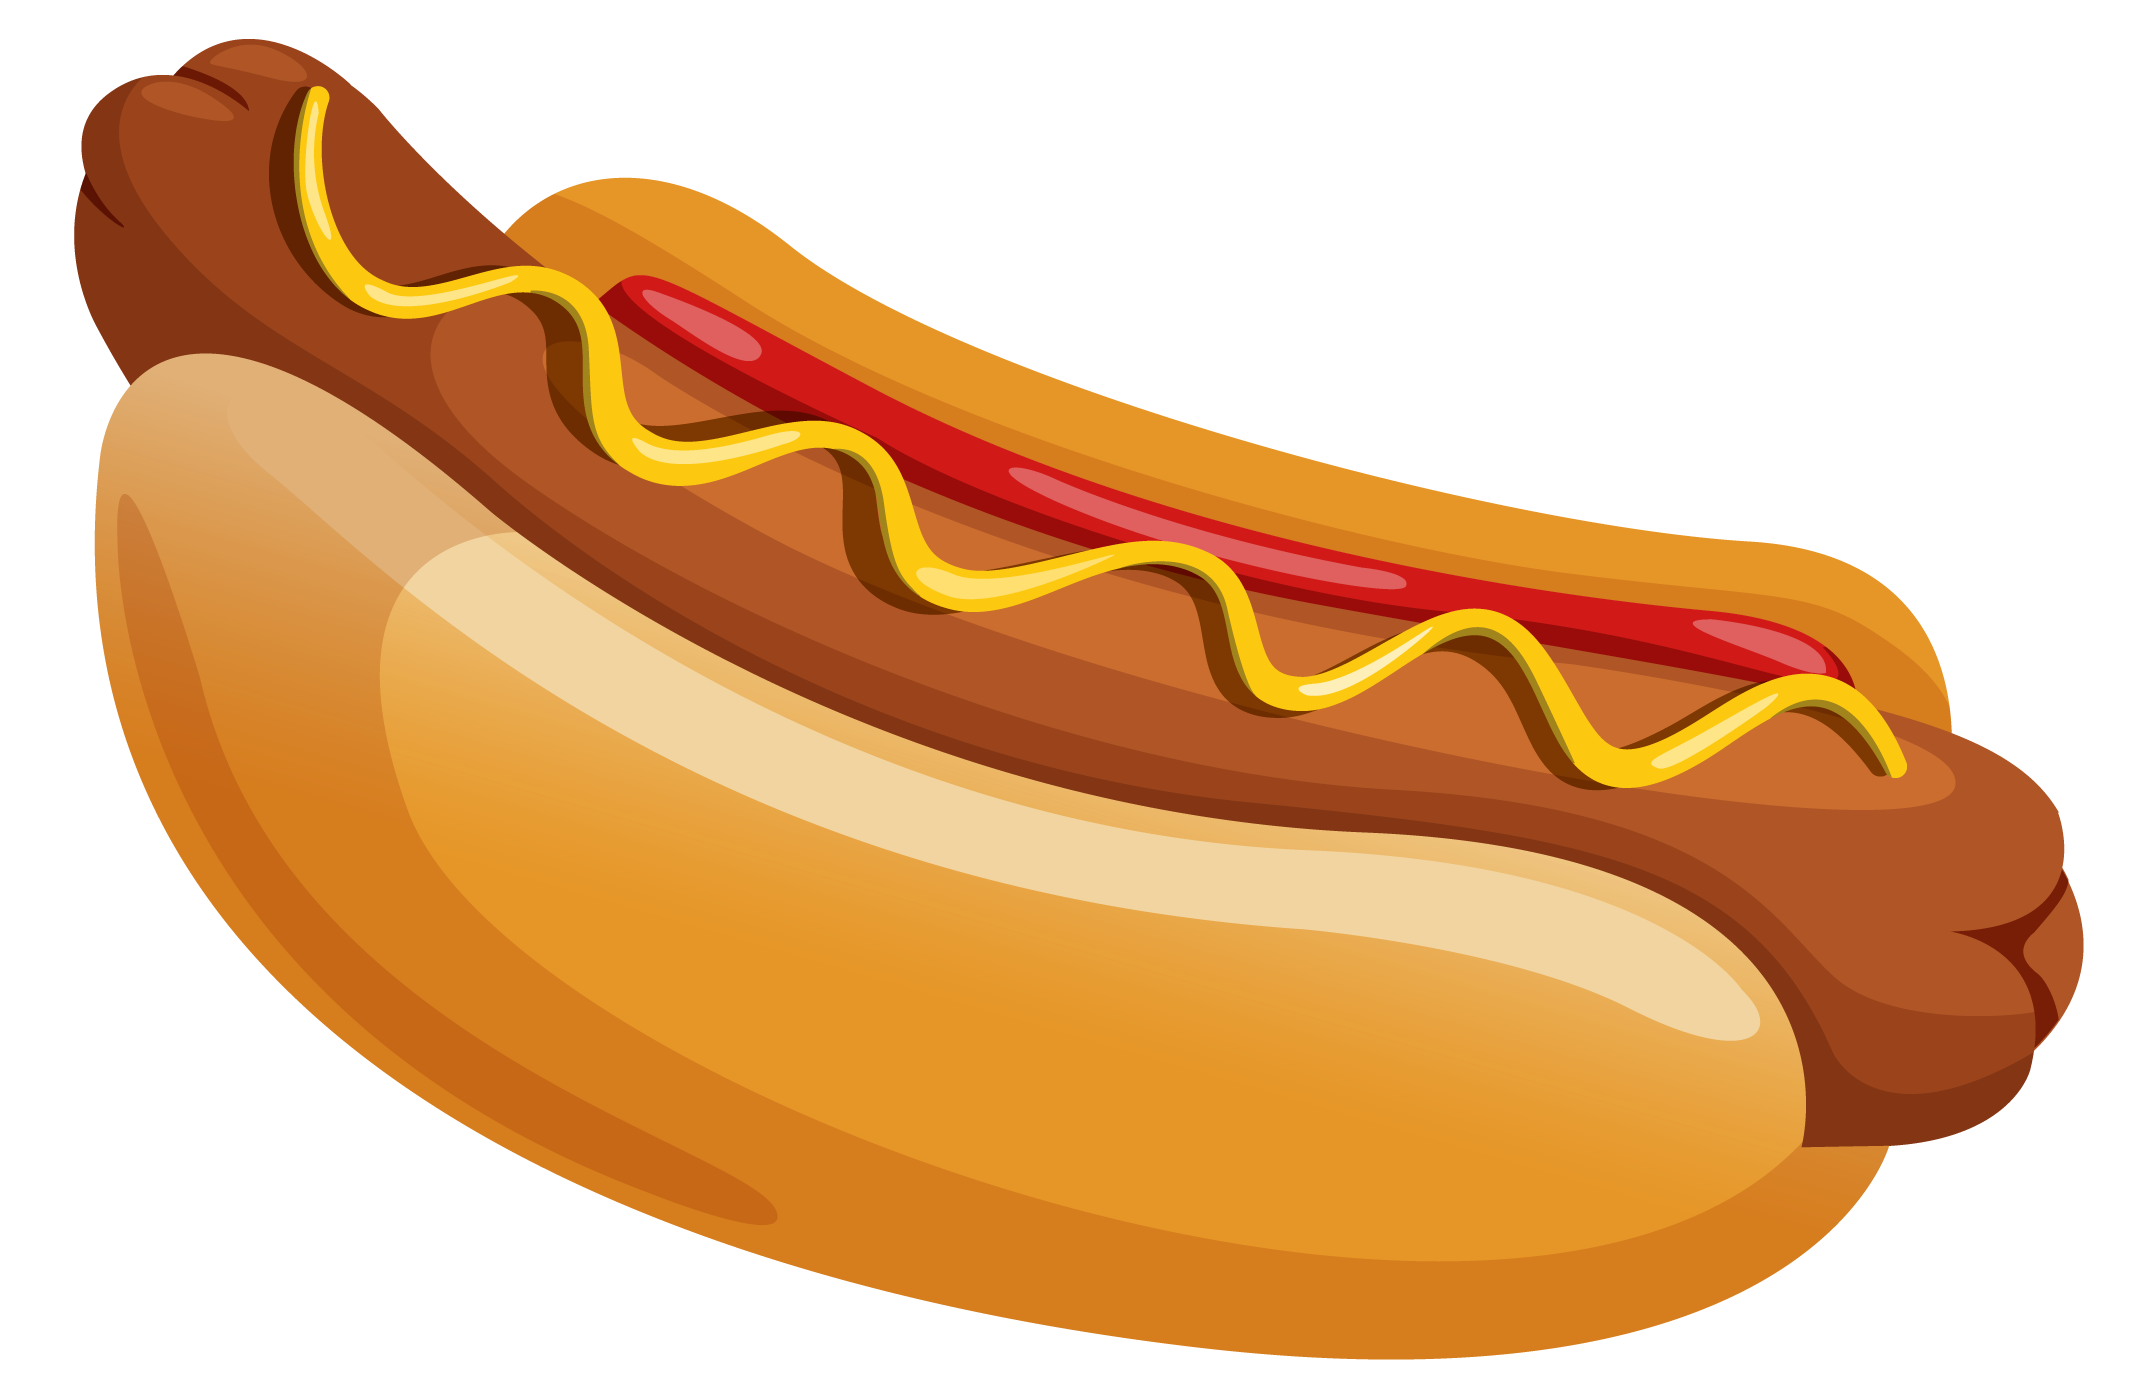 vector free download Dog hot free on. Hotdog clipart.